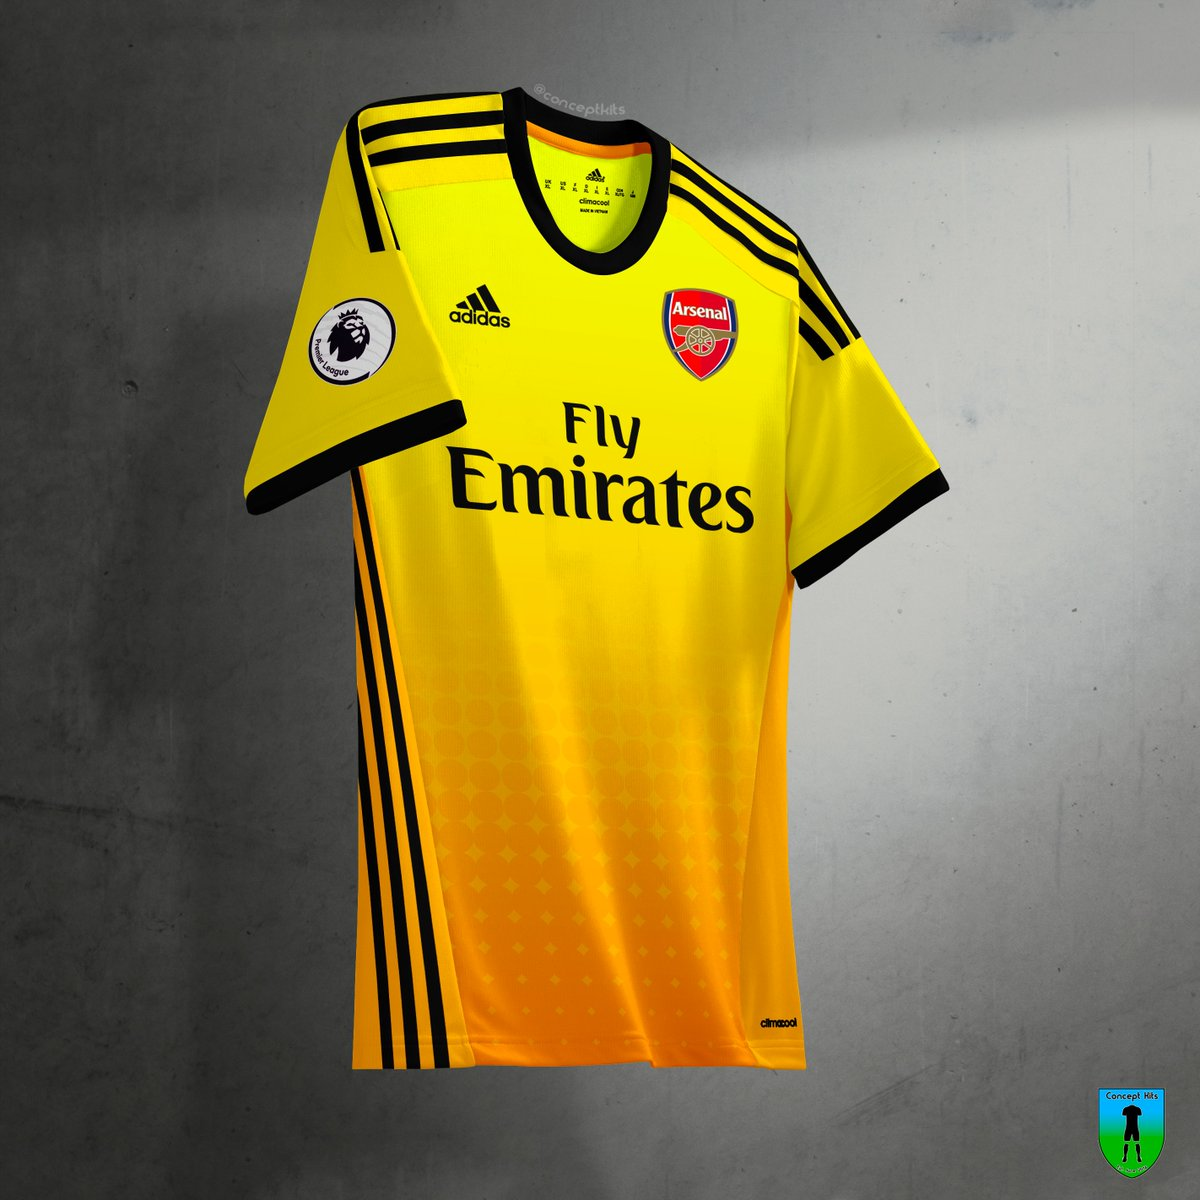 Adidas Arsenal 2019-20 Third Jersey - Fake Based on Concept From   ConceptKits 921fea15d